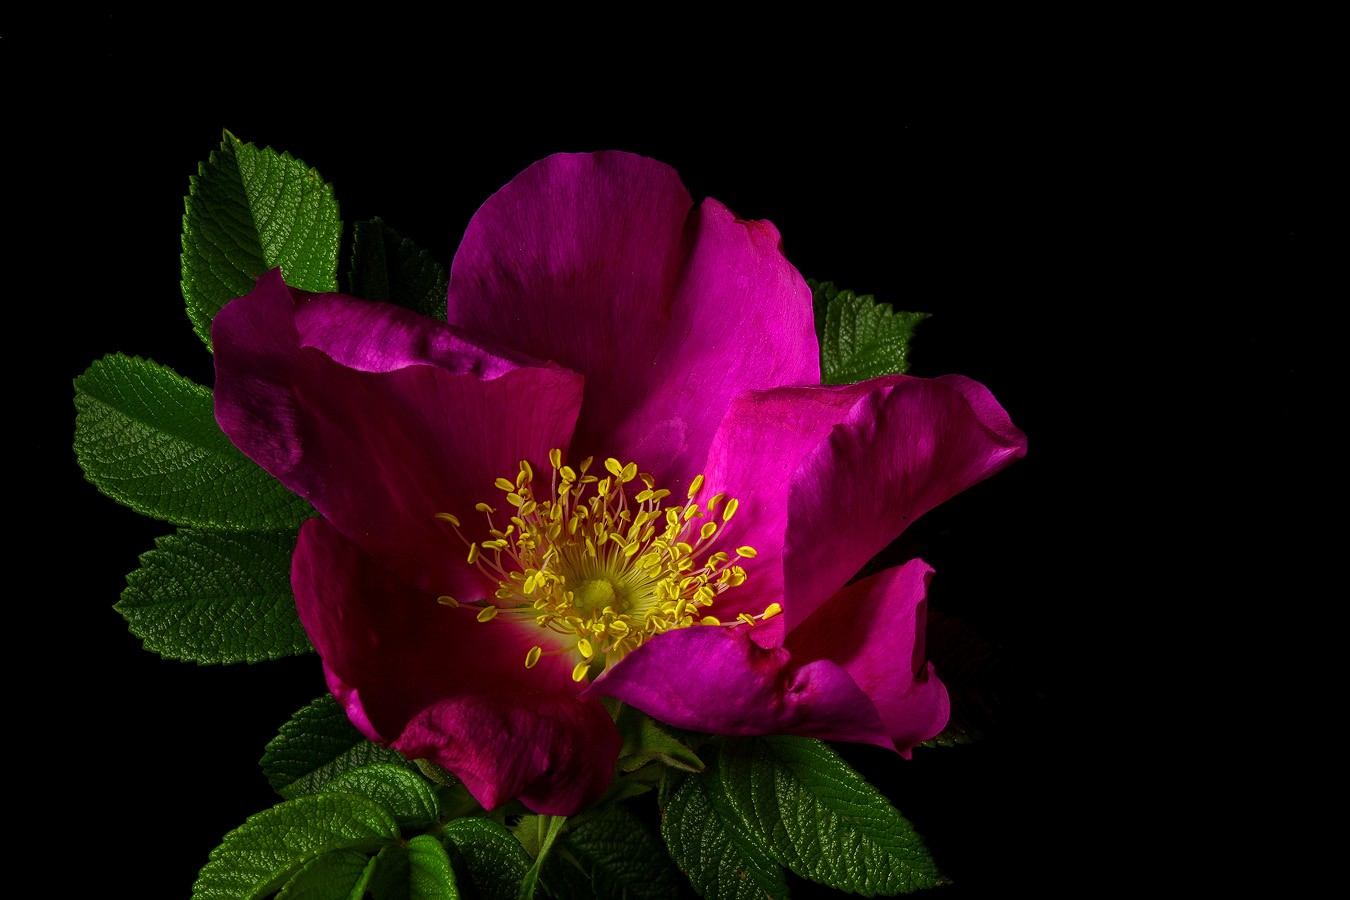 rugosa ver img aw author sava gregory and verena